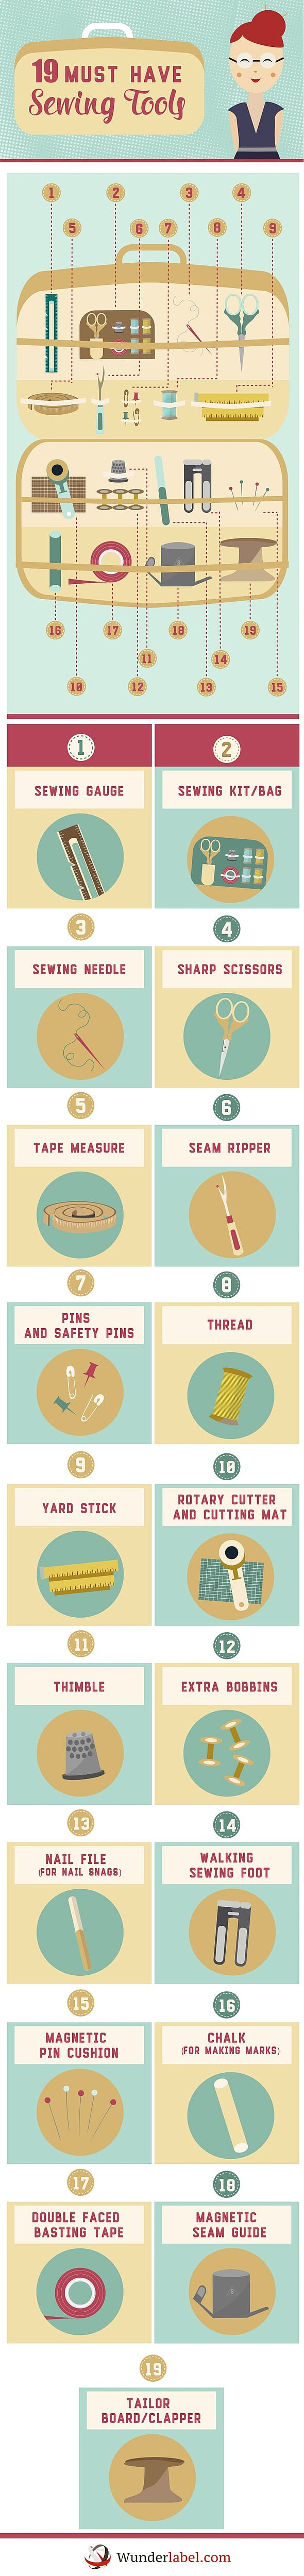 19 Must Have Sewing Tools [Infographic]